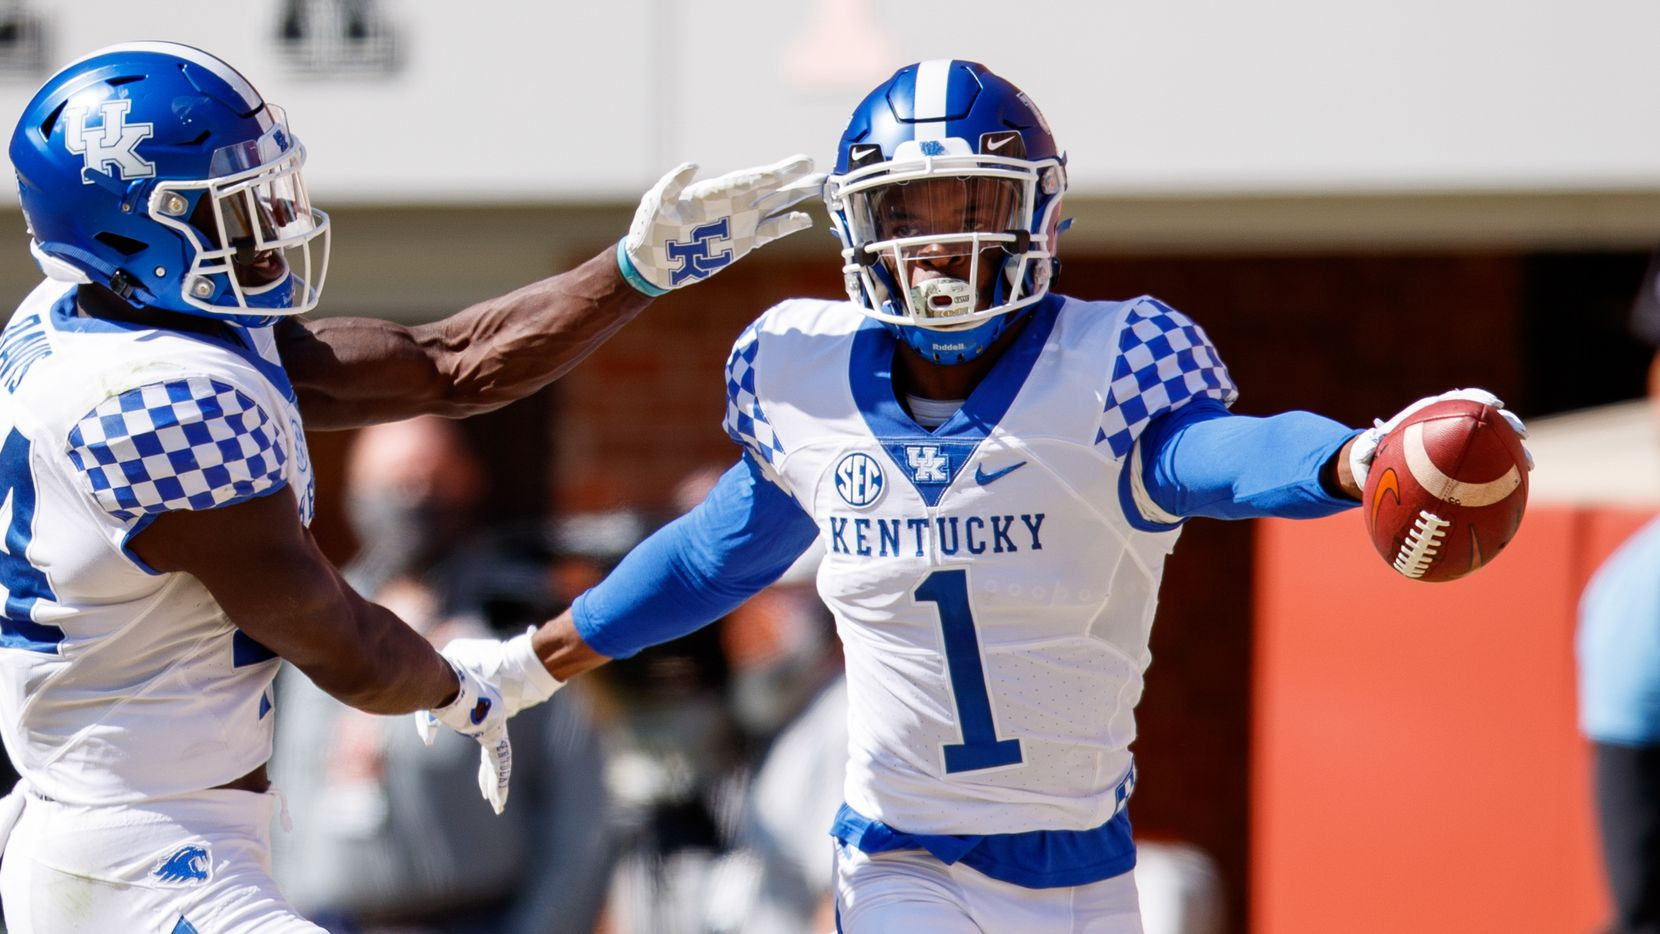 KNOXVILLE, TN - OCTOBER 17: Kelvin Joseph #1 of the Kentucky Wildcats celebrates a pick six against the Tennessee Volunteers at Neyland Stadium on October 17, 2020 in Knoxville, Tennessee. (Photo by /Collegiate Images/Getty Images)